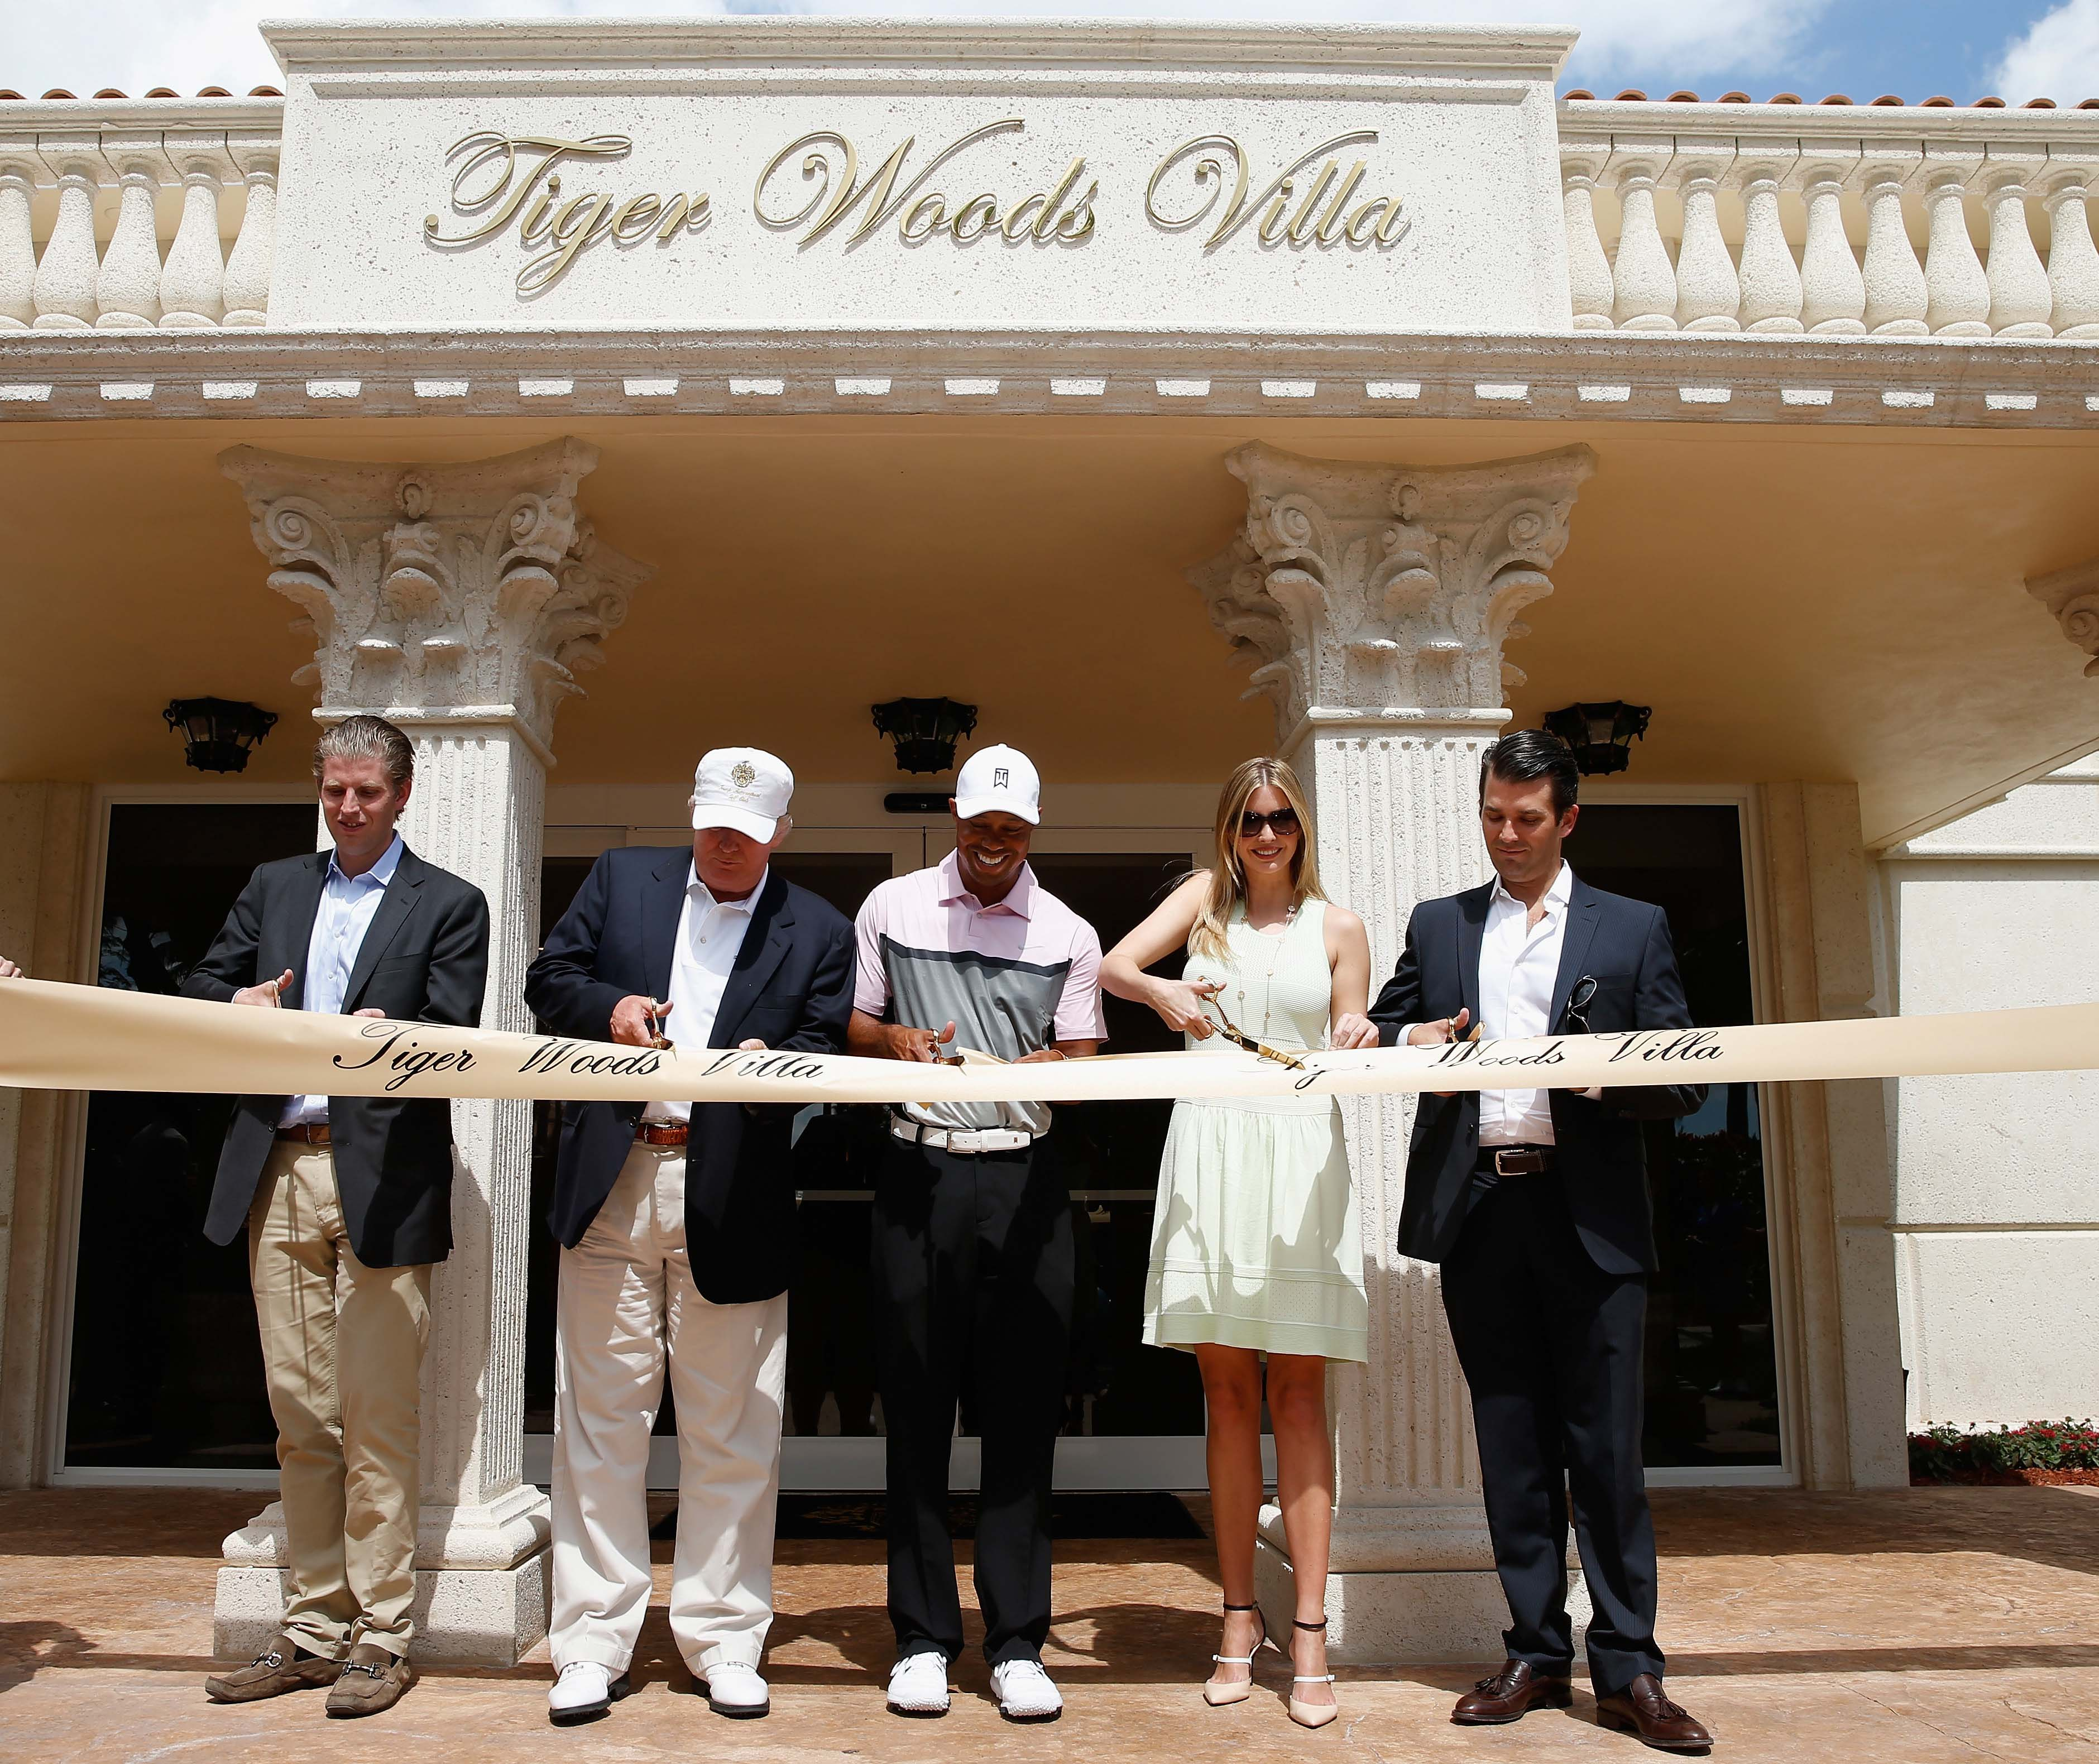 Eric Trump, Donald Trump, Tiger Woods, Ivanka Trump and Donald Trump Jr.